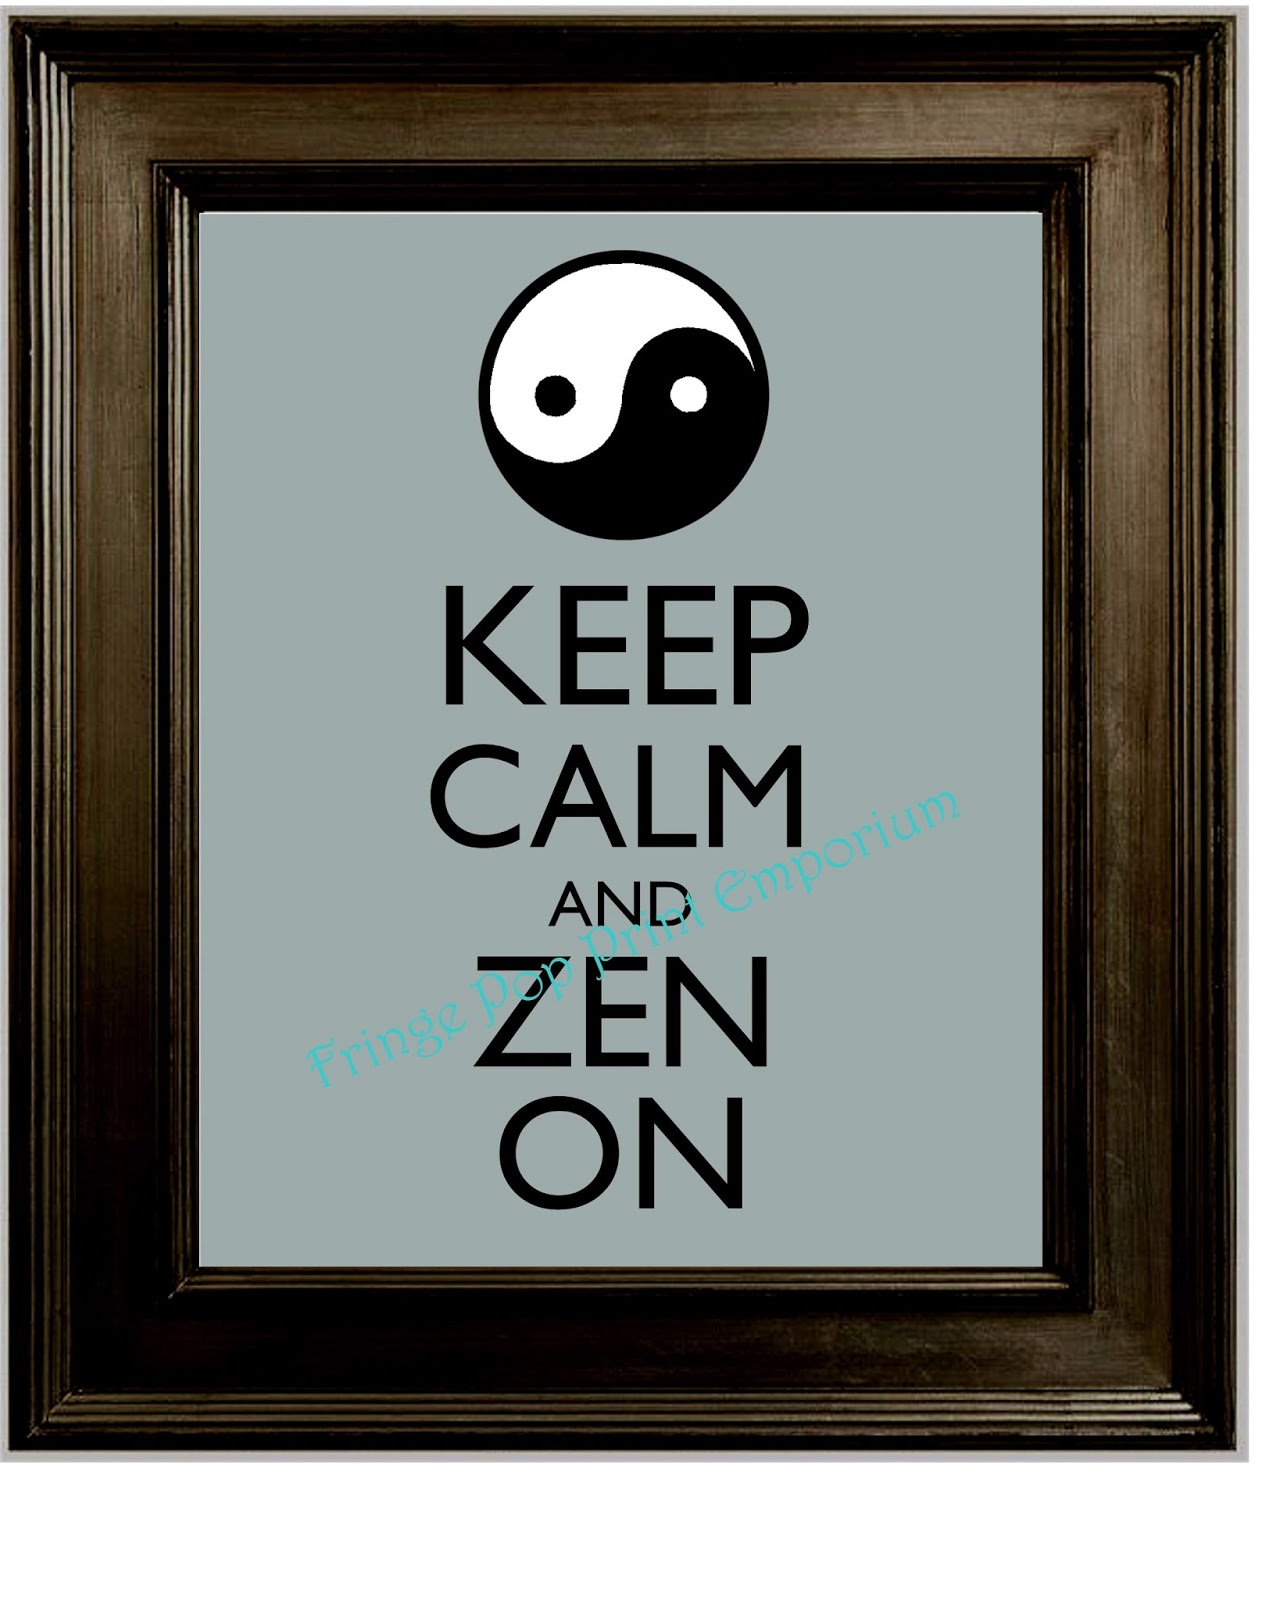 KEEP CALM AND ZEN ON